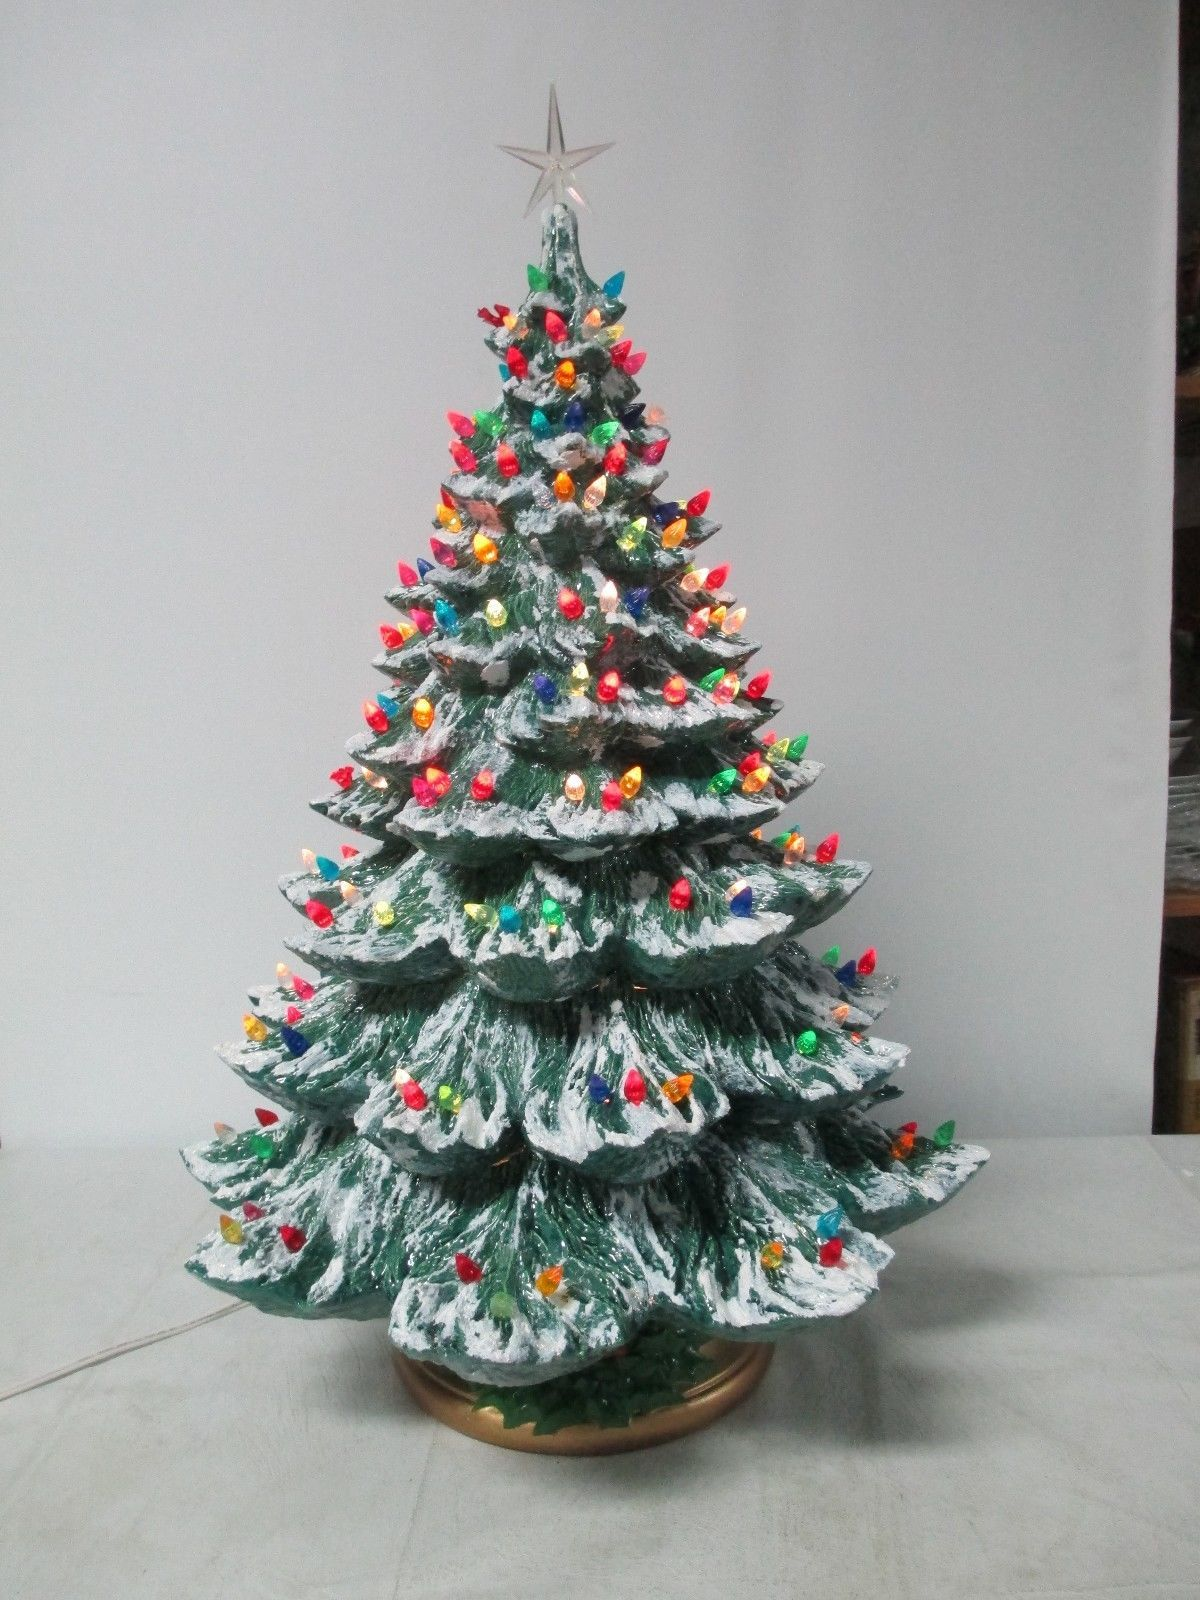 26 Quot Vintage Ceramic Christmas Tree Holland Mold W Lights